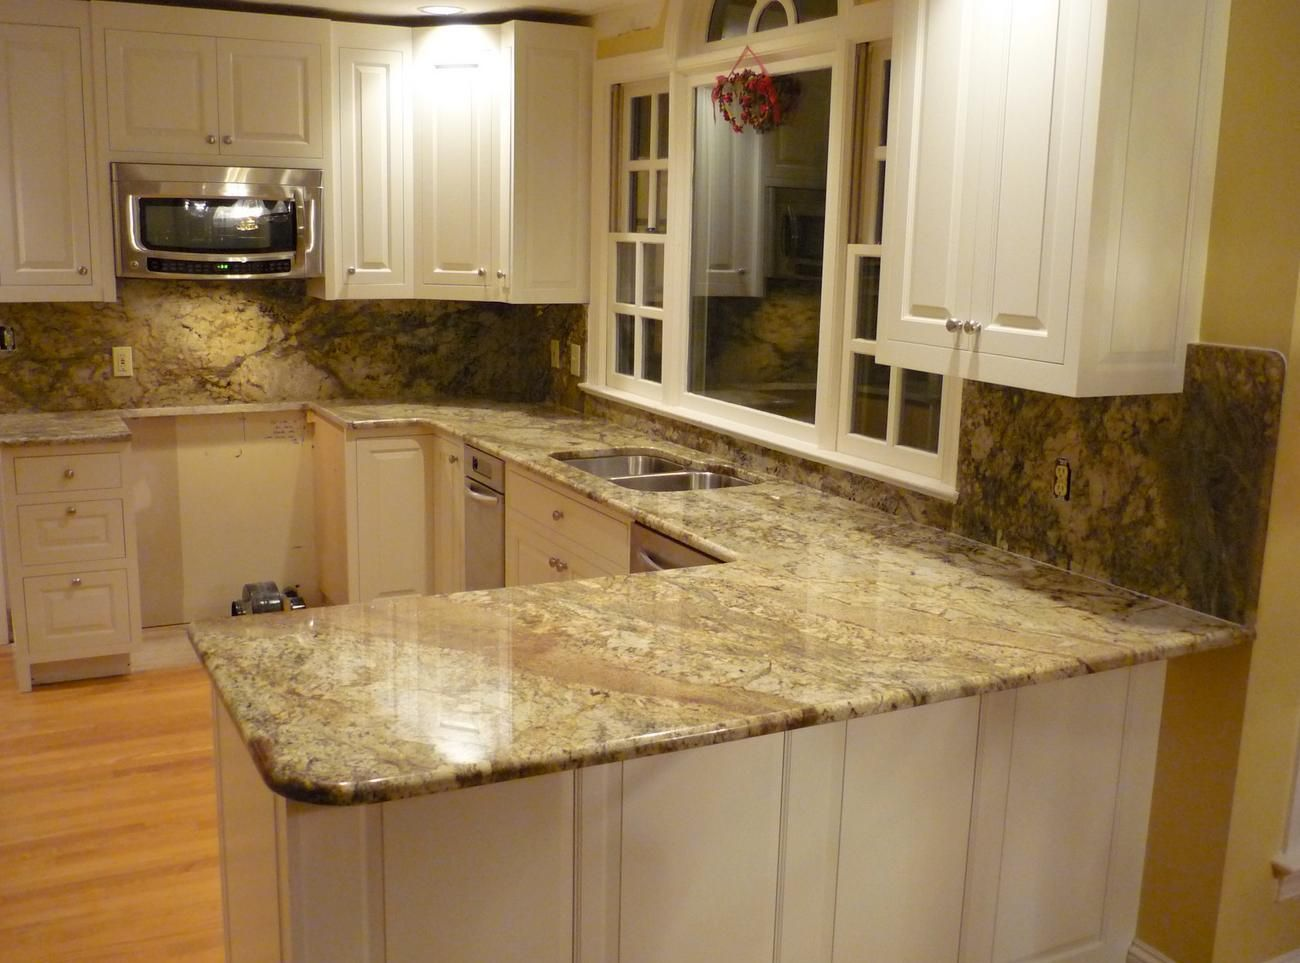 Laminate Countertops That Look Like Granite Cooking Setting Up The Table Washing Dishes Cleaning This May